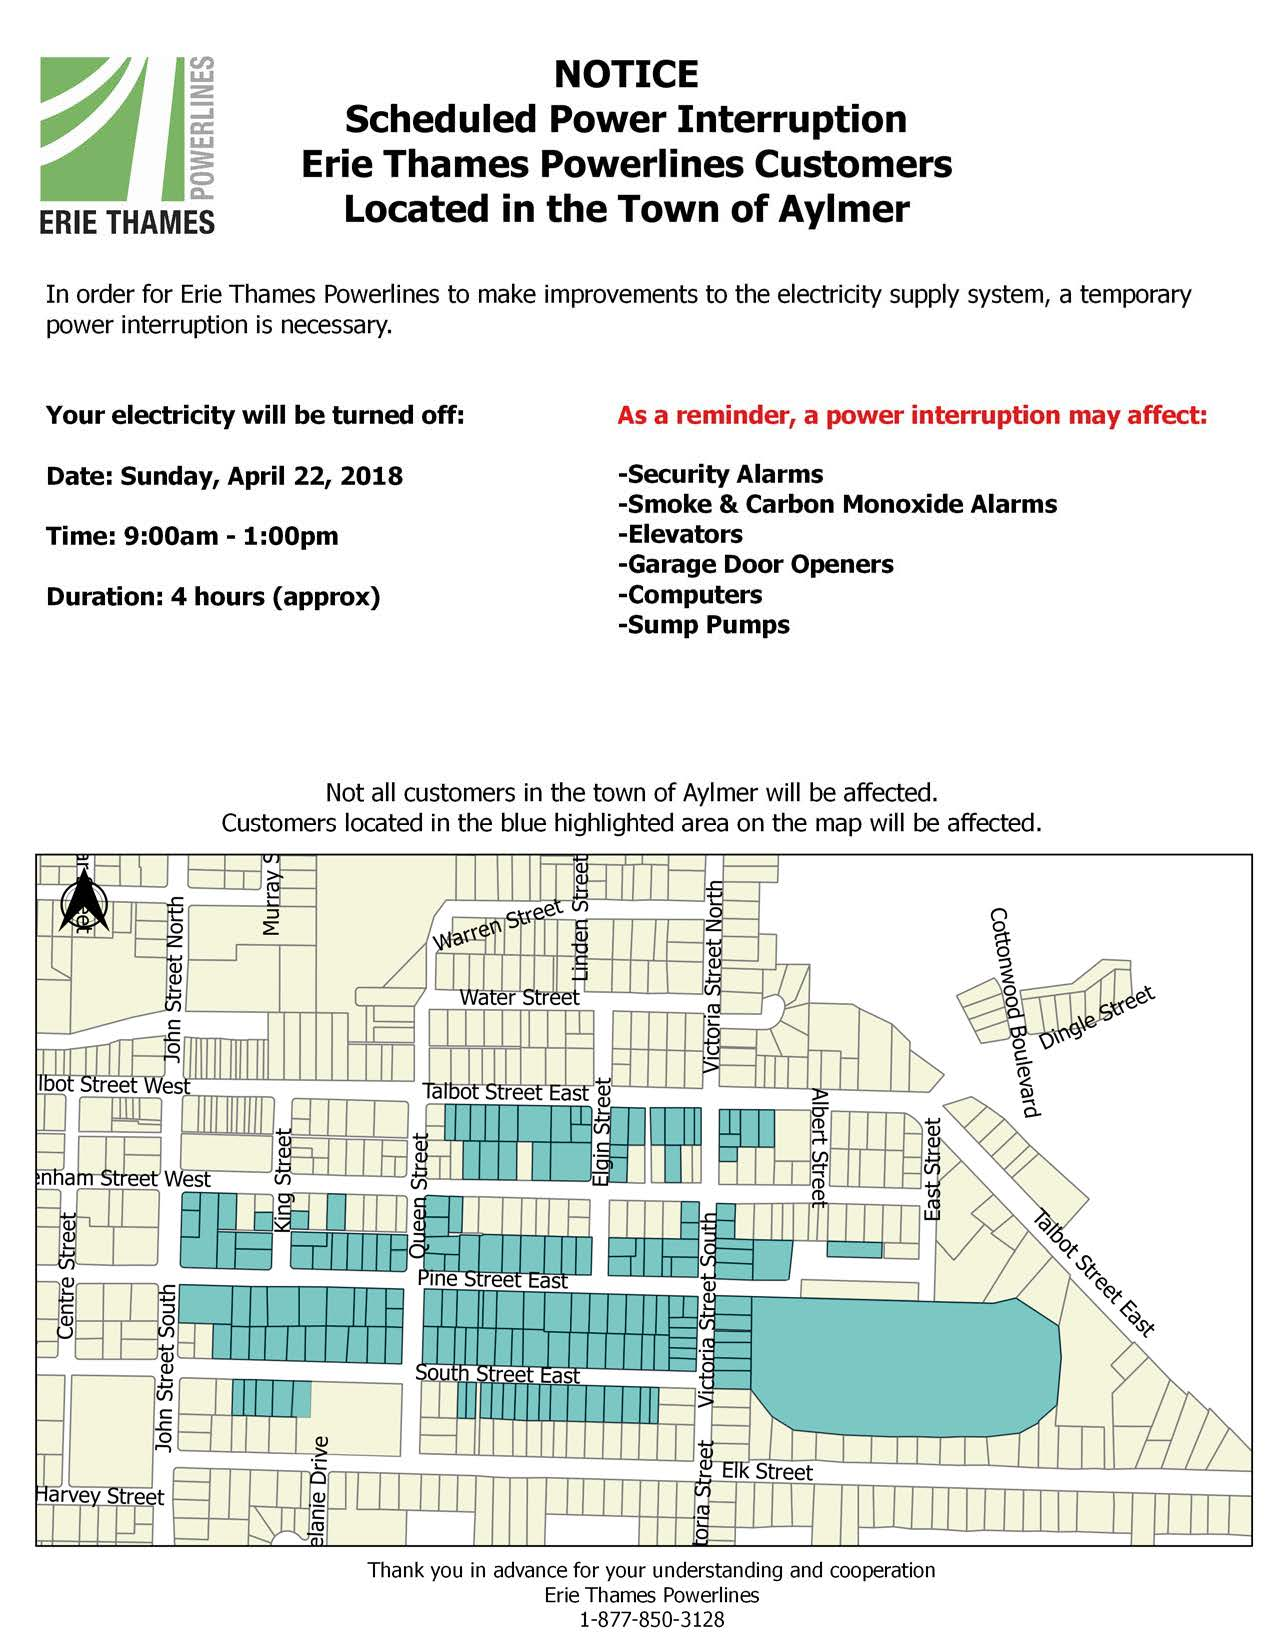 Schedule Power Outage - Aylmer - April 22, 2018 - ERTH Power